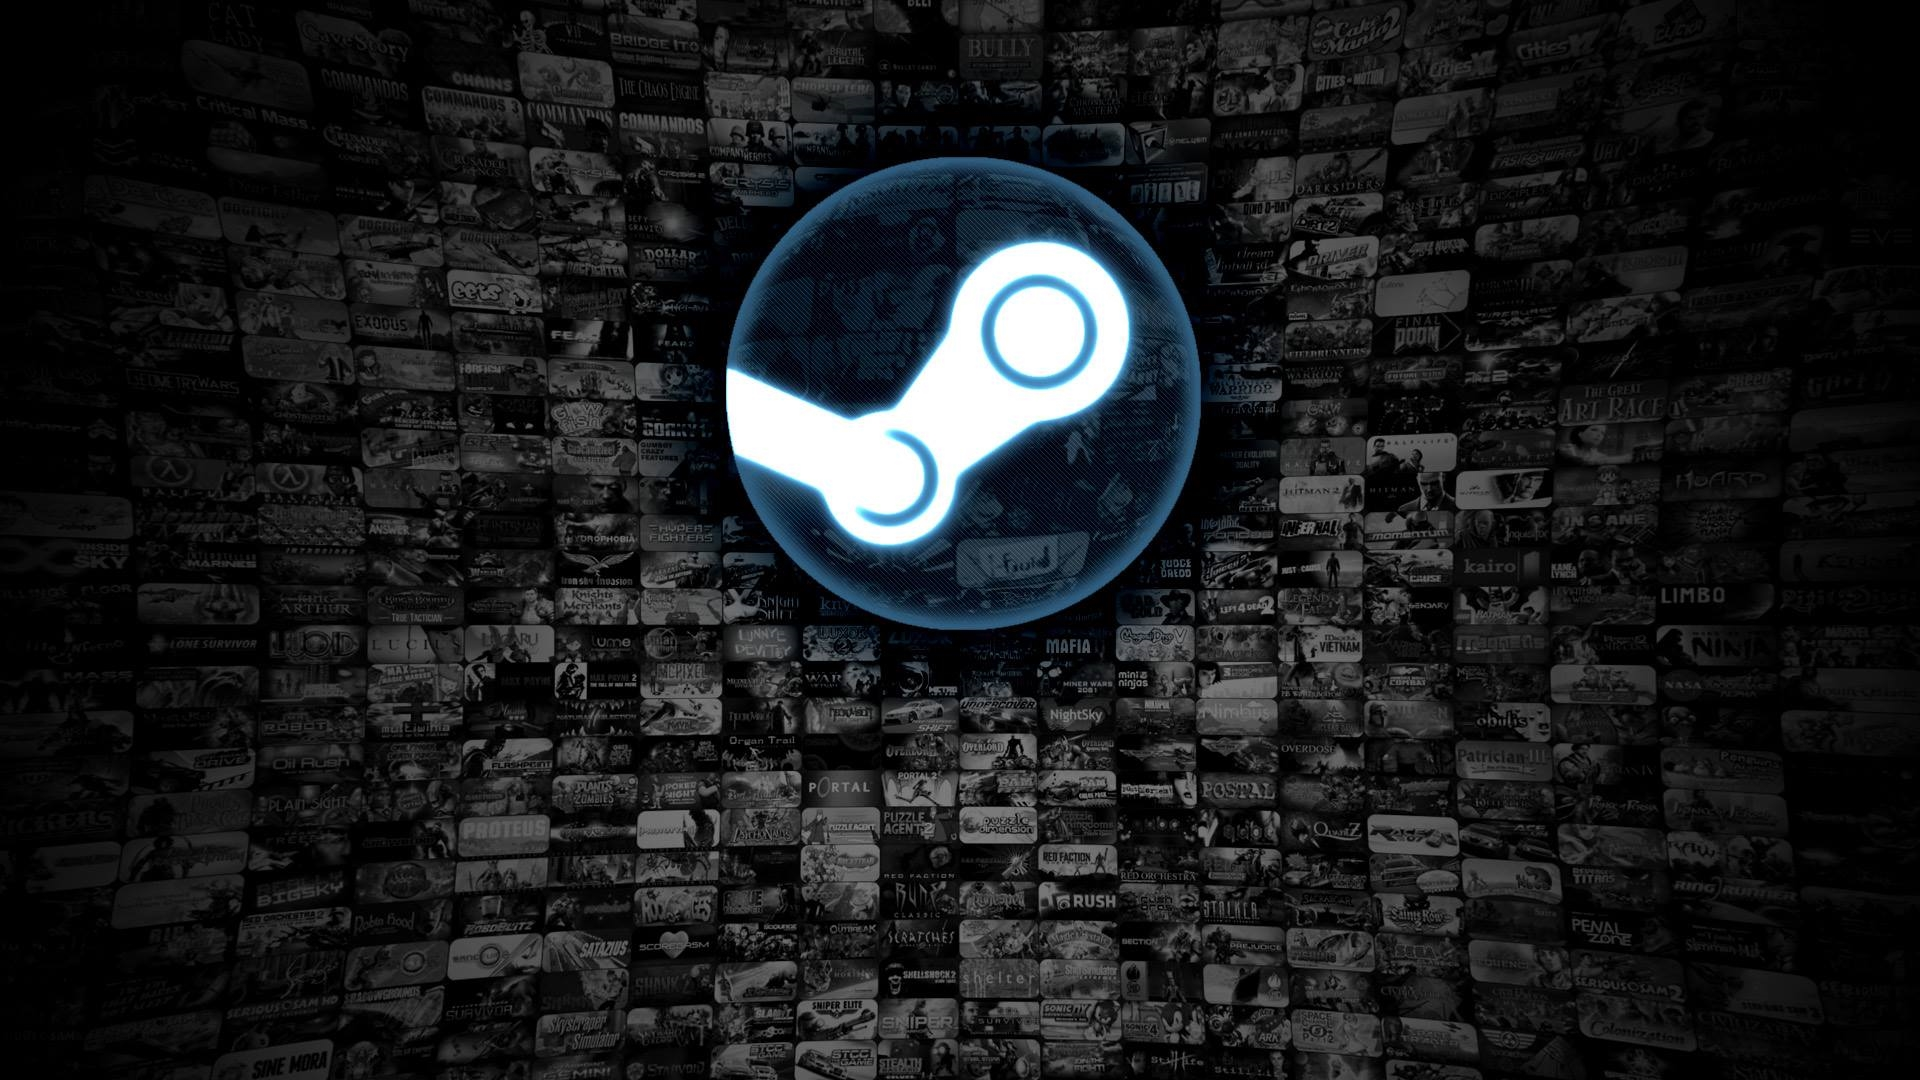 Steam Workshop 1080p Wallpaper Collection